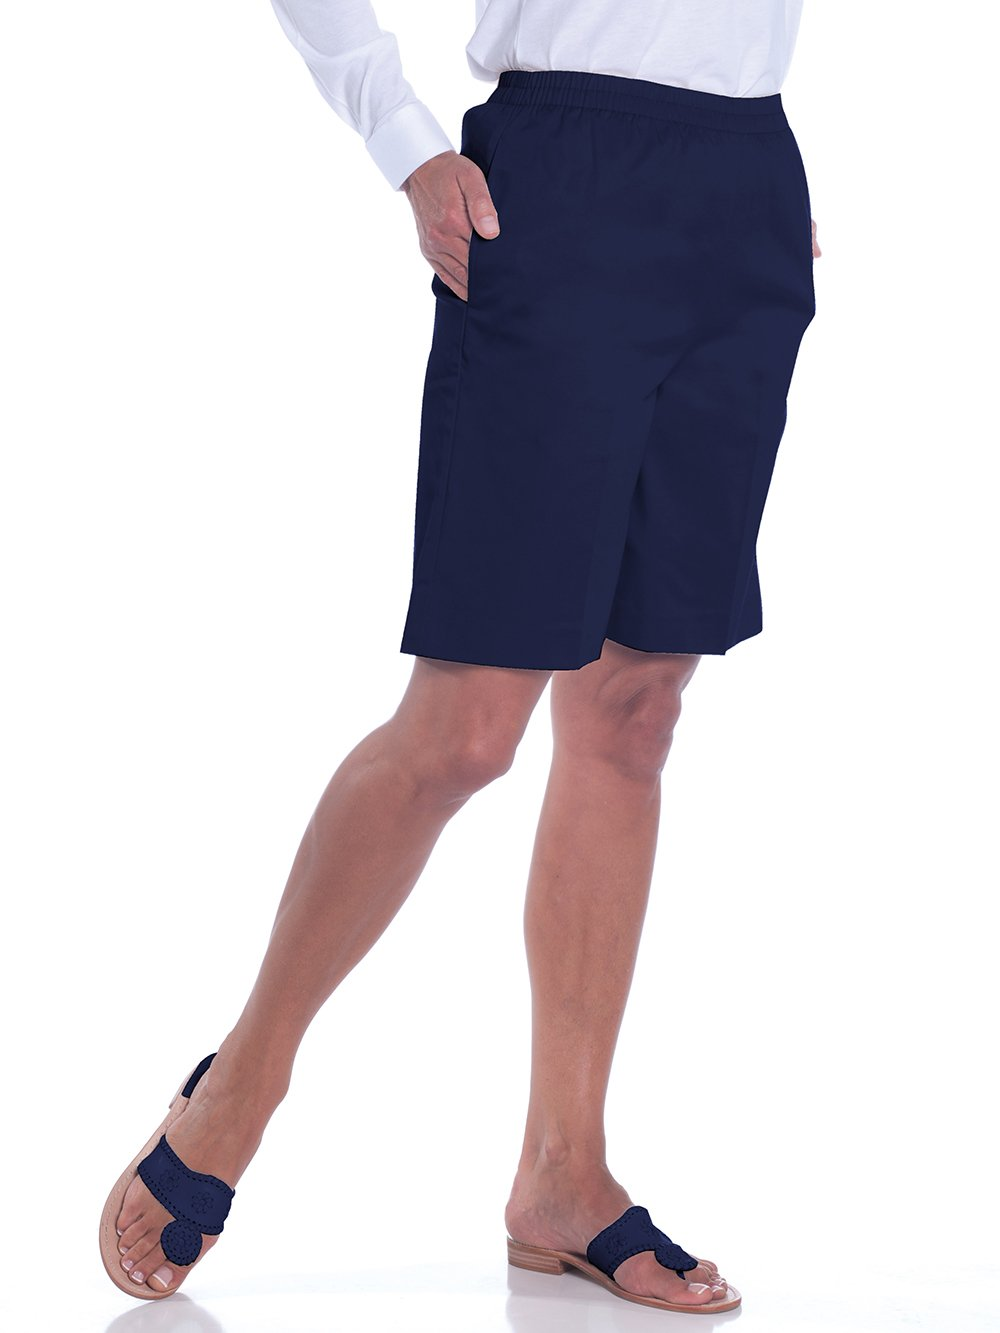 Stretch Twill Pull-On Shorts</br>Ink E76 - Leonlevin